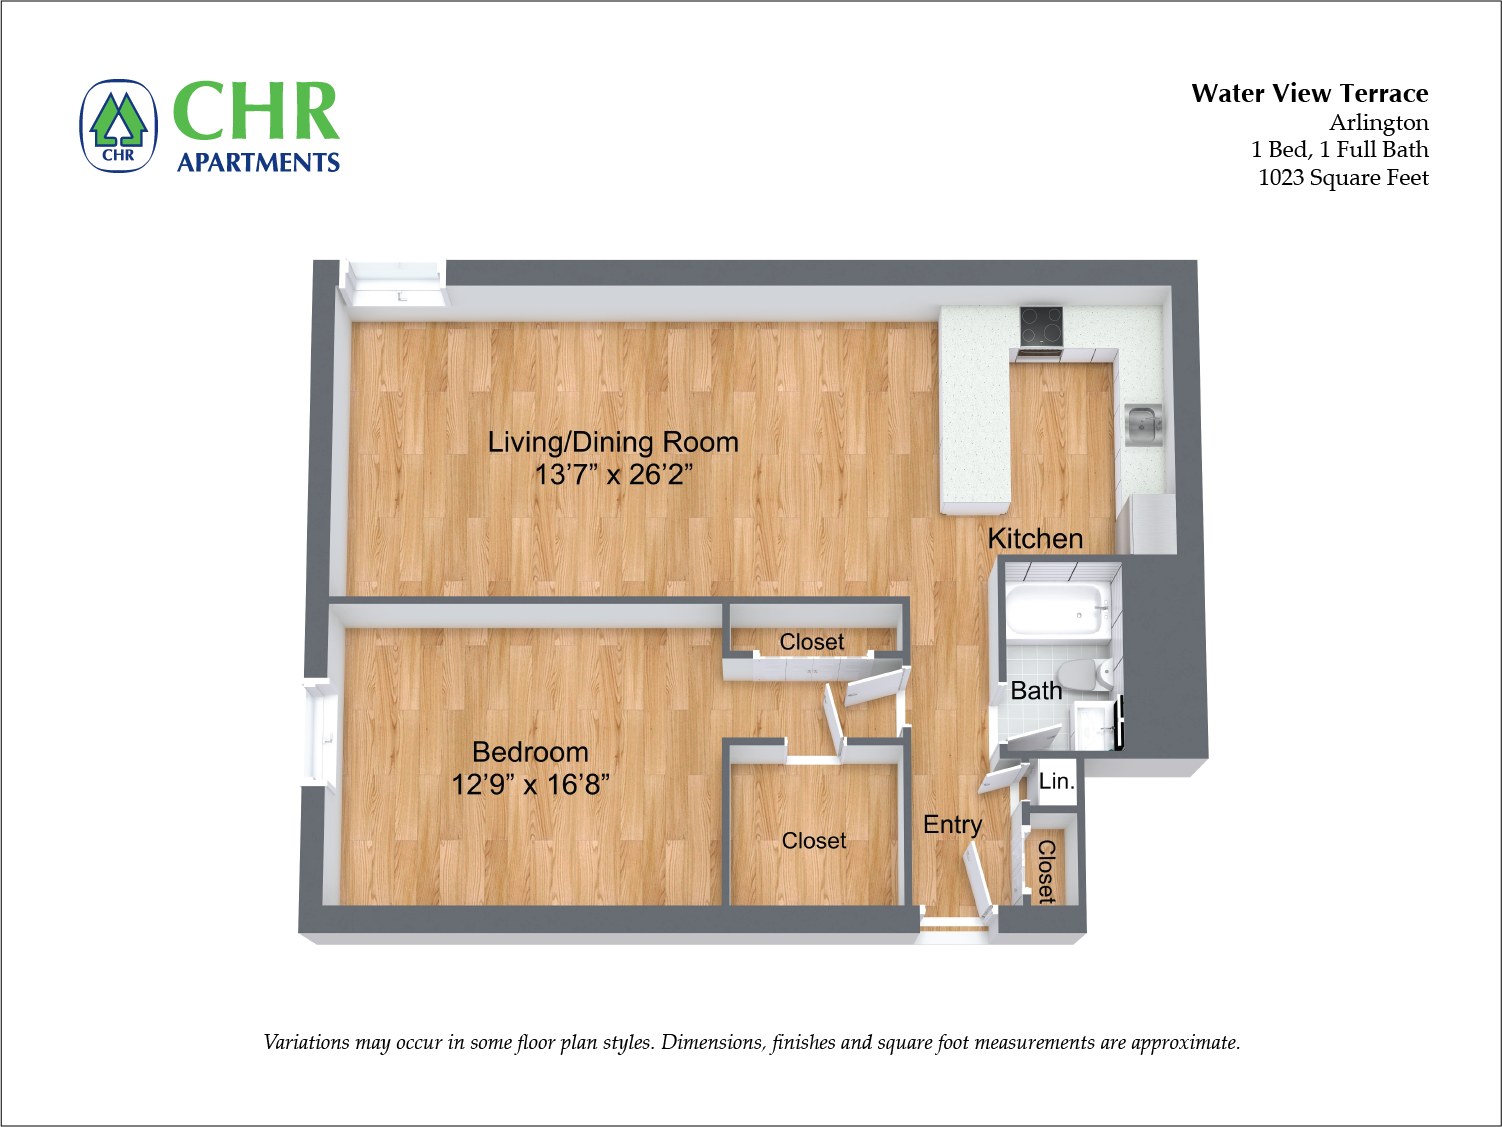 Click to view 1 BR Large w/ A/C floor plan gallery